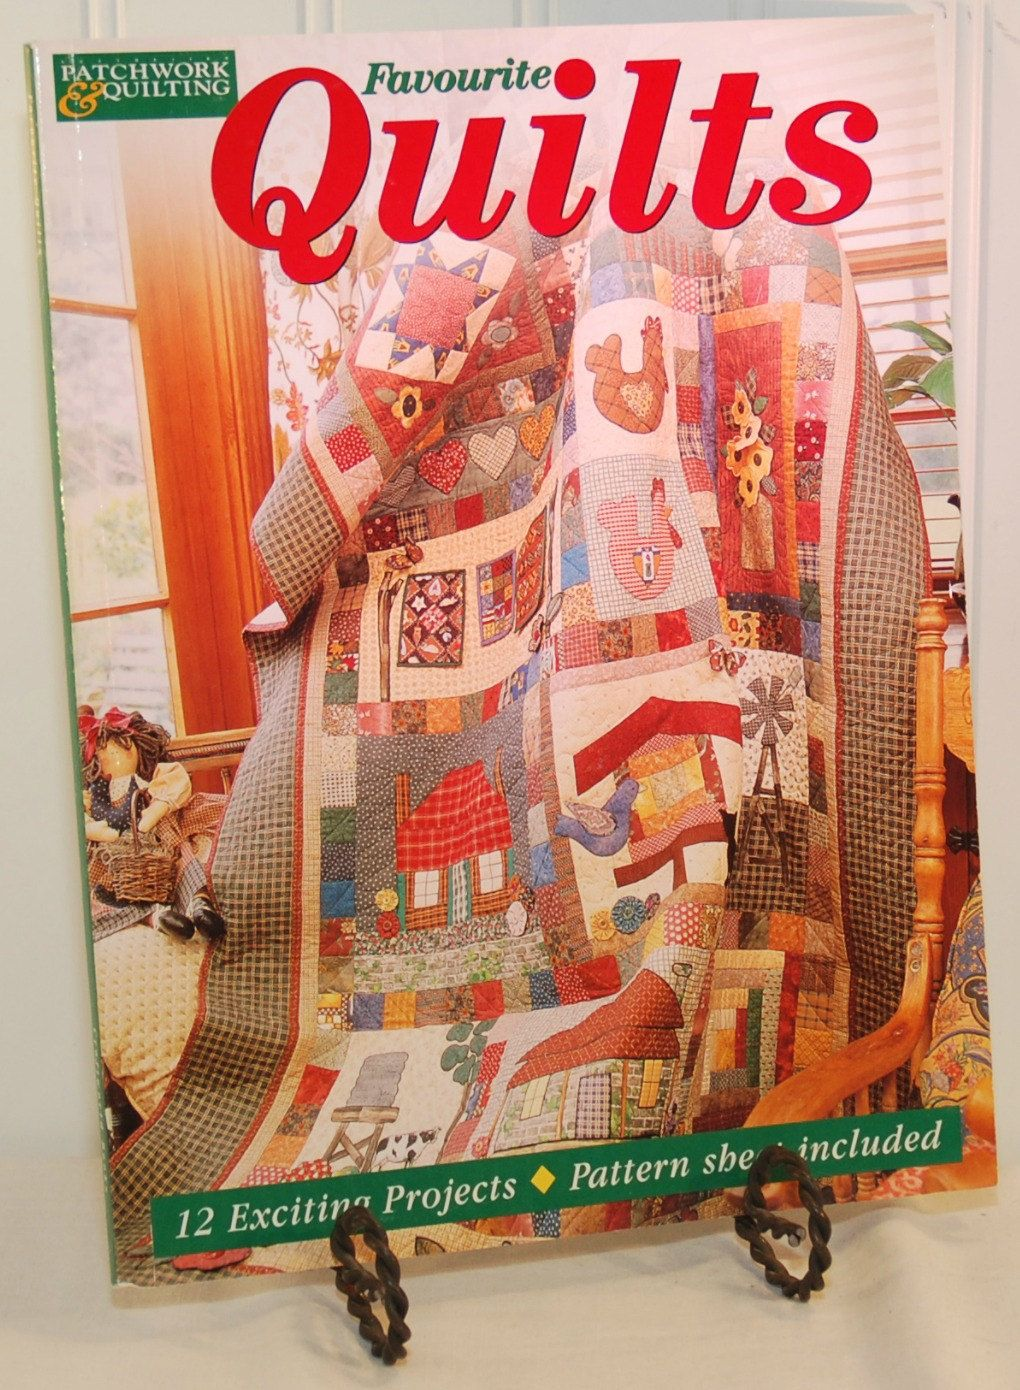 Favourite Quilts (c. 2000) Published by Craftworld Books ... : quilting books australia - Adamdwight.com